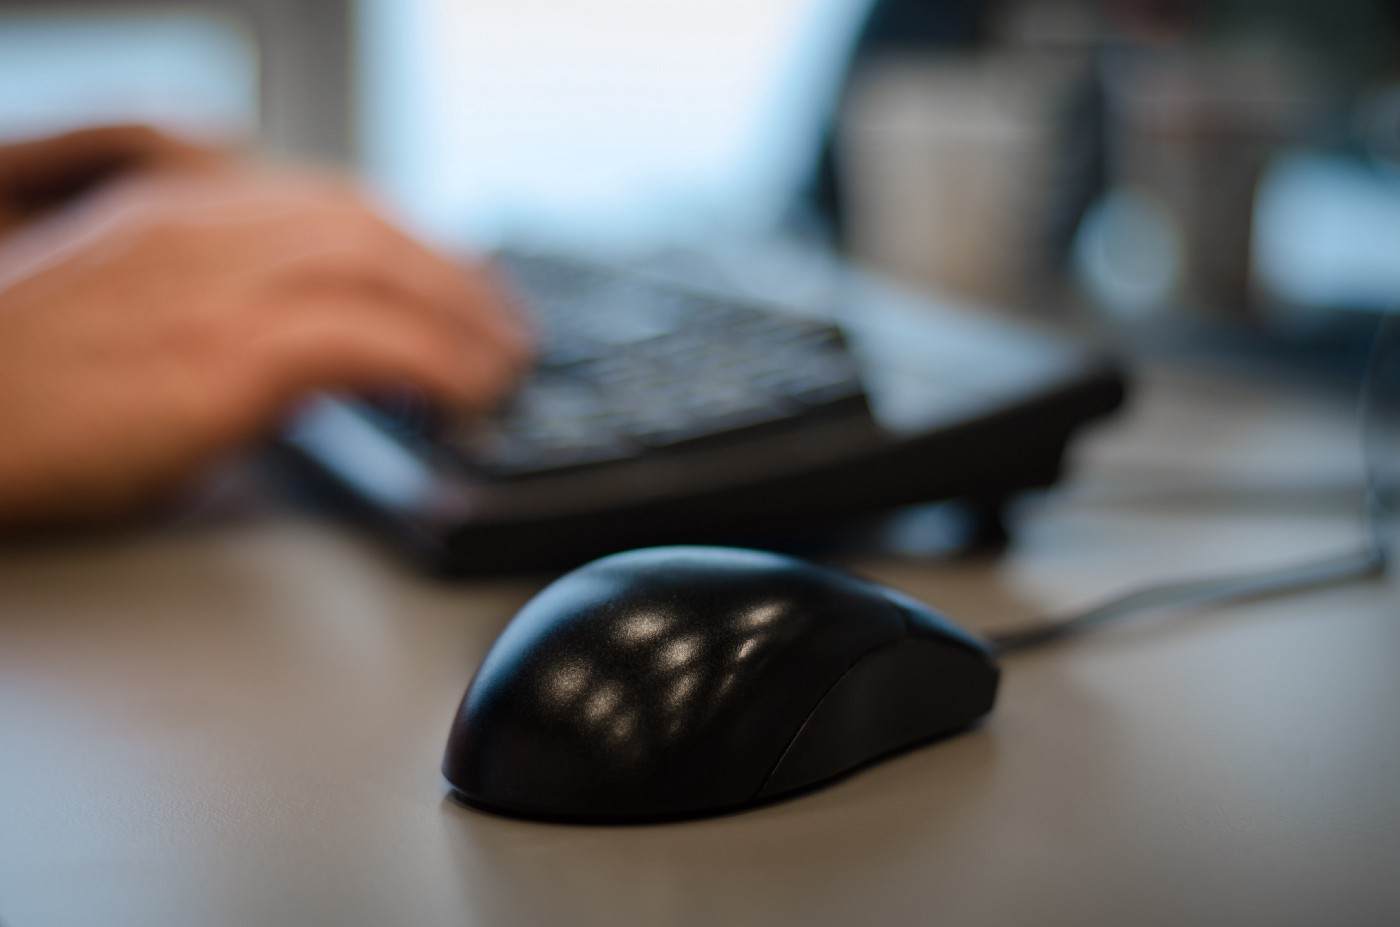 A computer mouse on a desk with hands on a keyboard slightly blurred in the background.